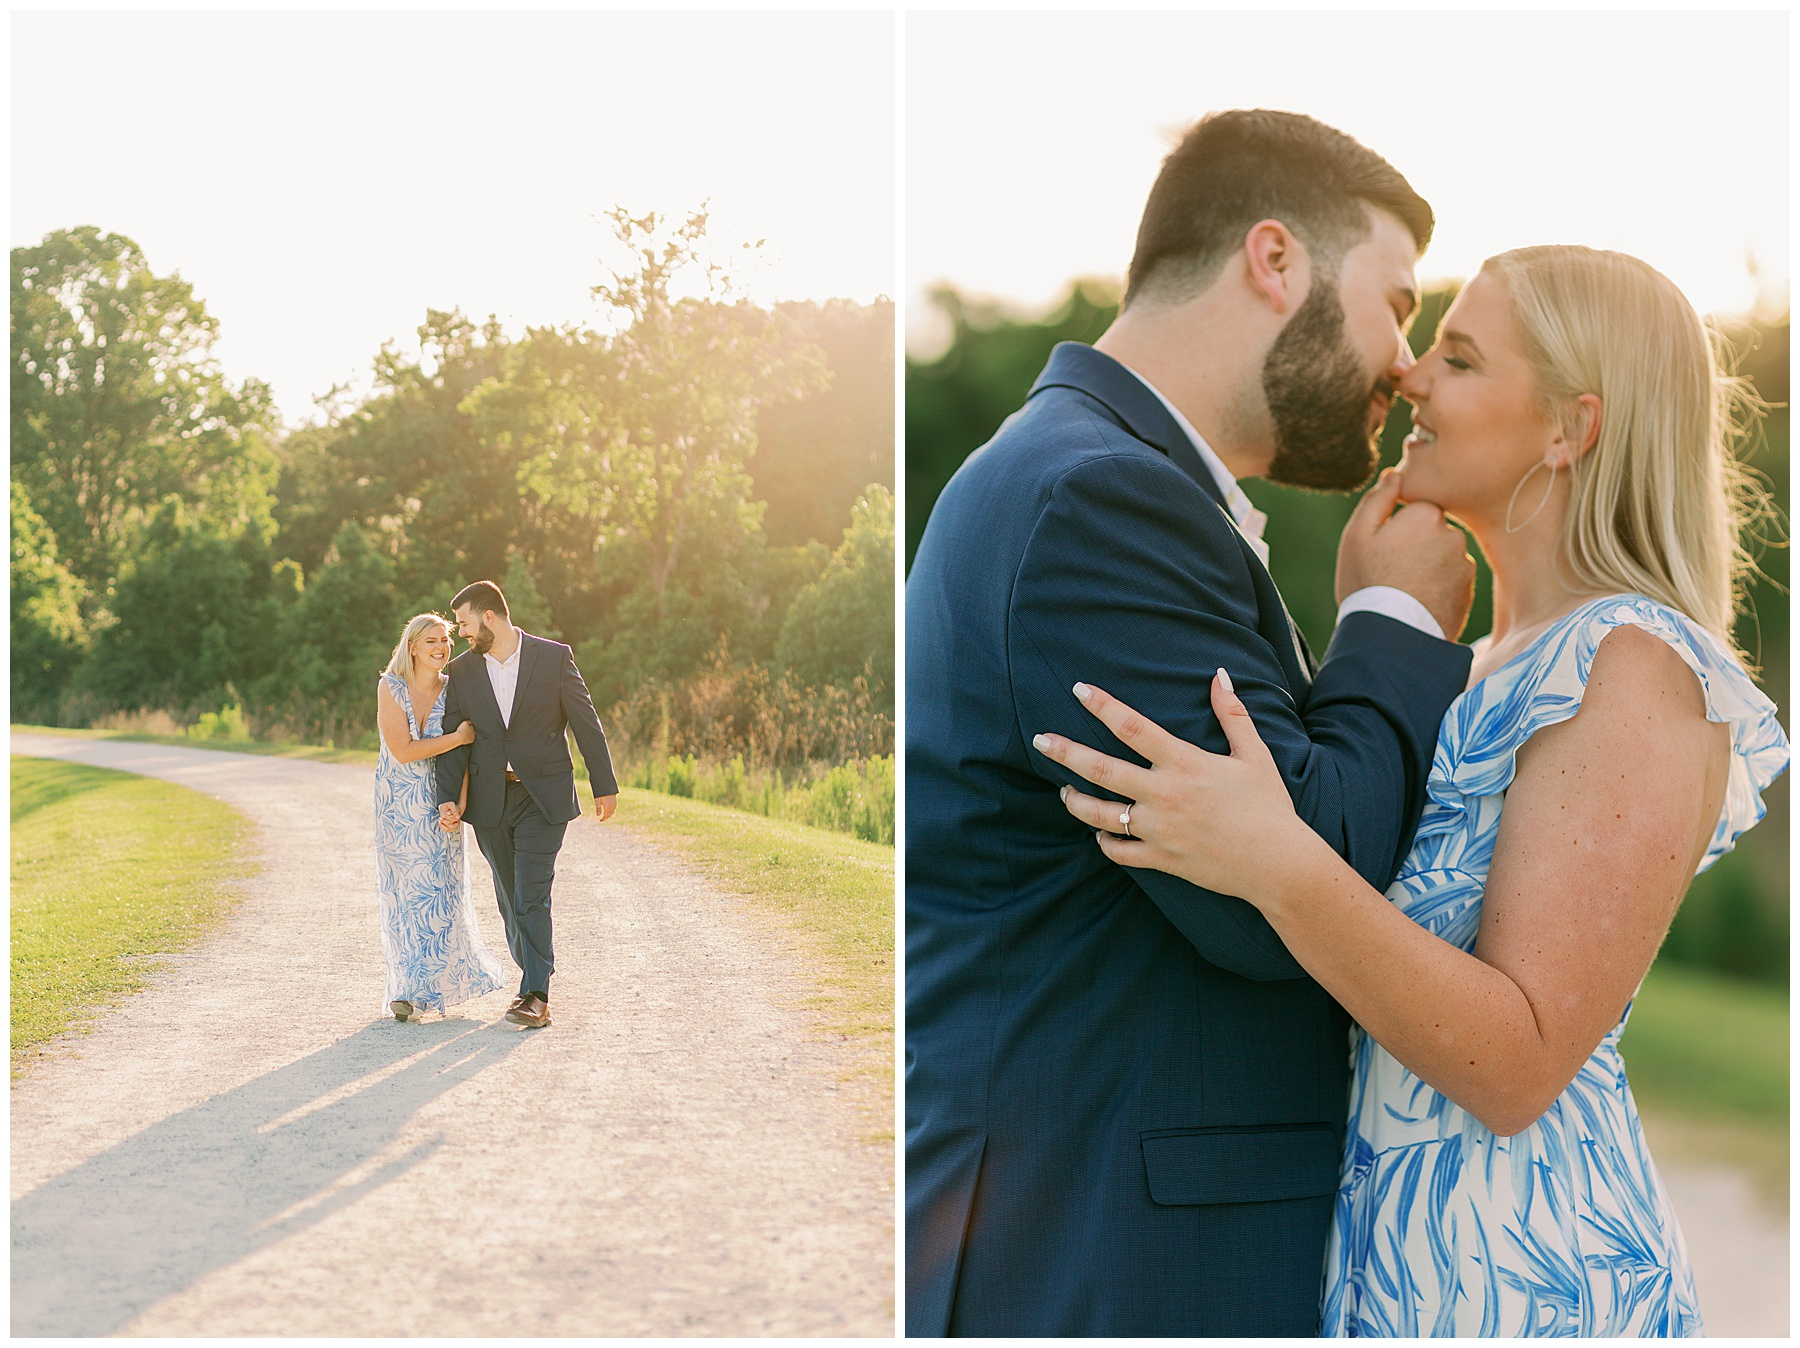 Couple shares big laughs at Sweetwater Wetlands Park